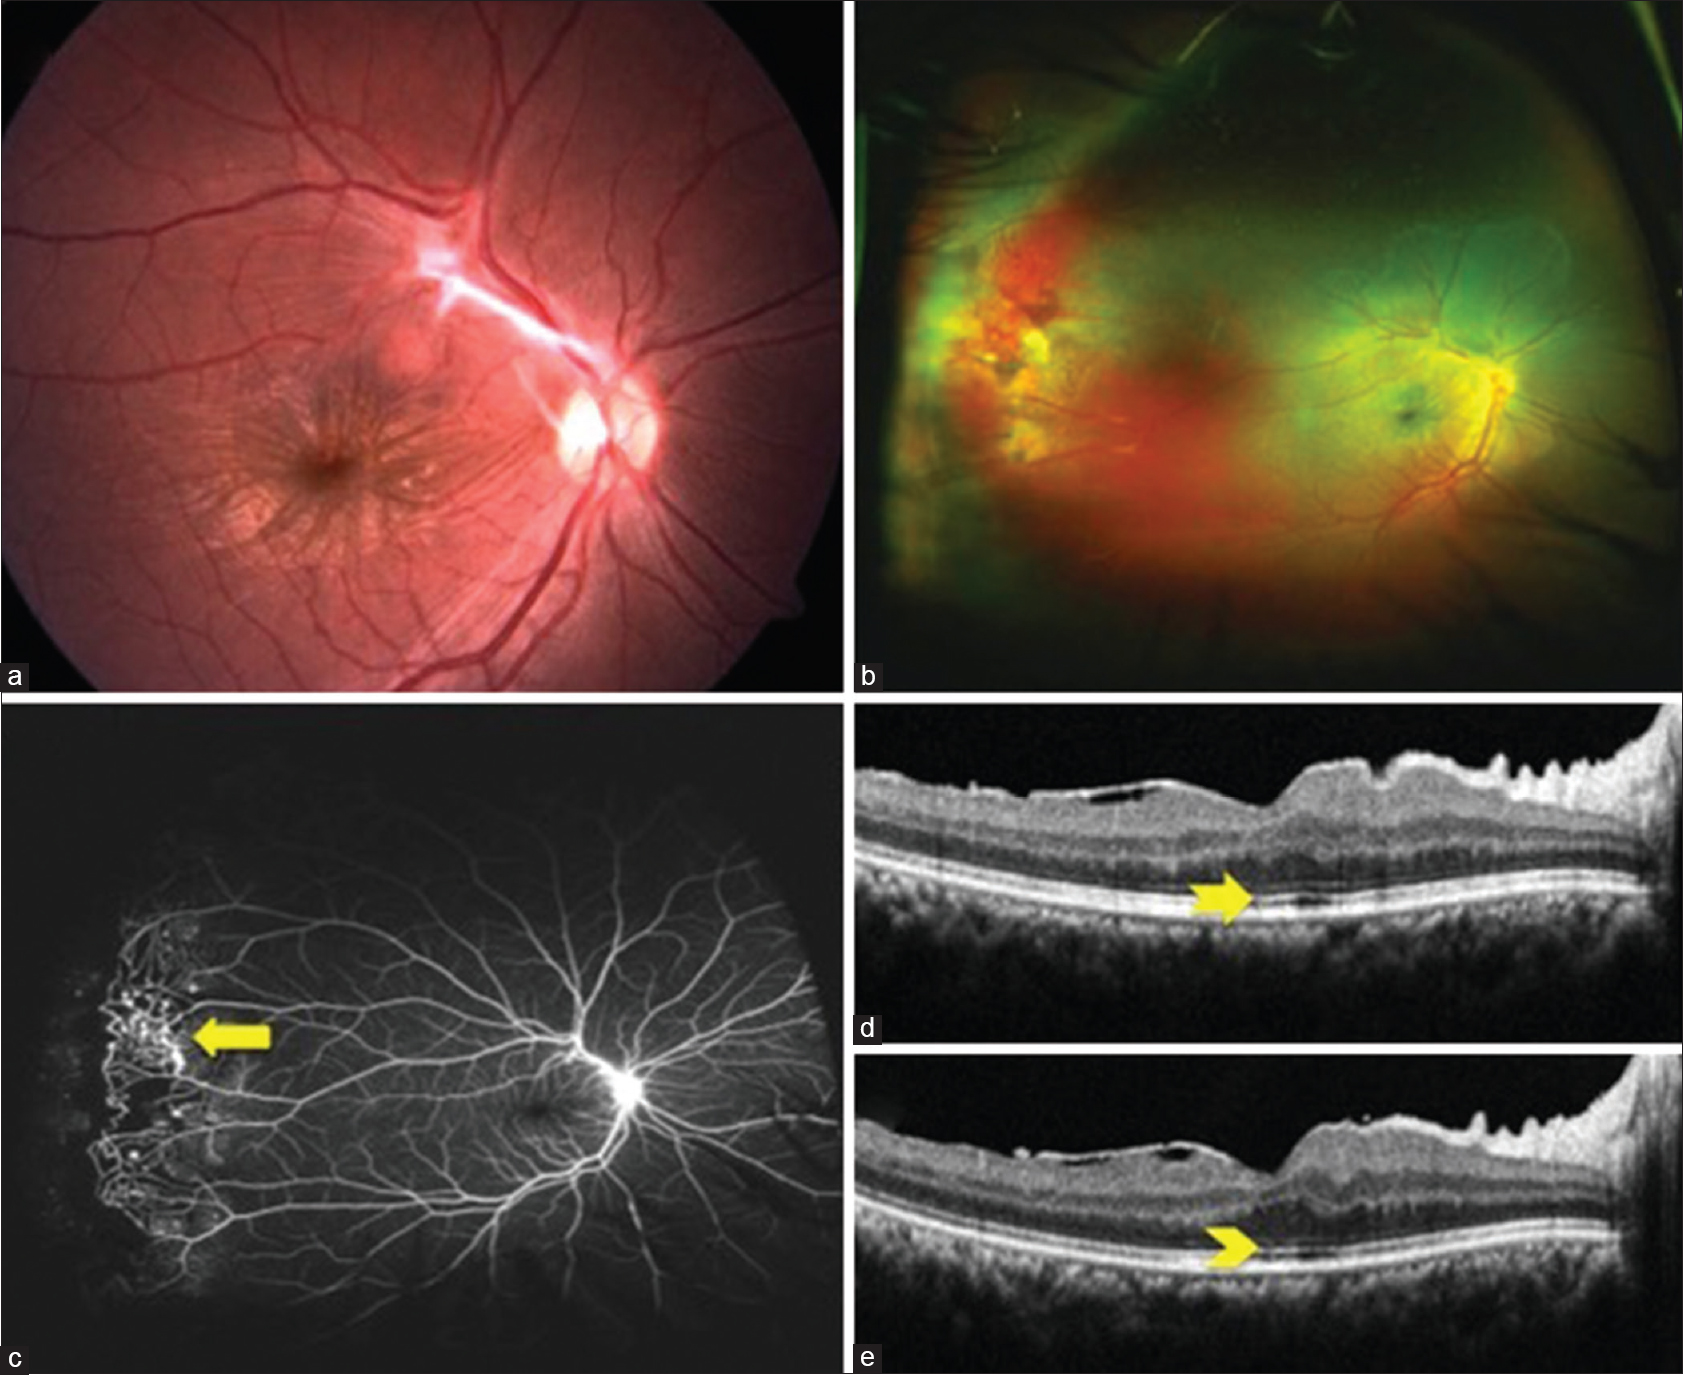 Figure 1 A Color Fundus Photograph Of The Right Eye 38 Year Old Man With Epiretinal Membrane Along Supertemporal Arcade B Ultra Wide Field